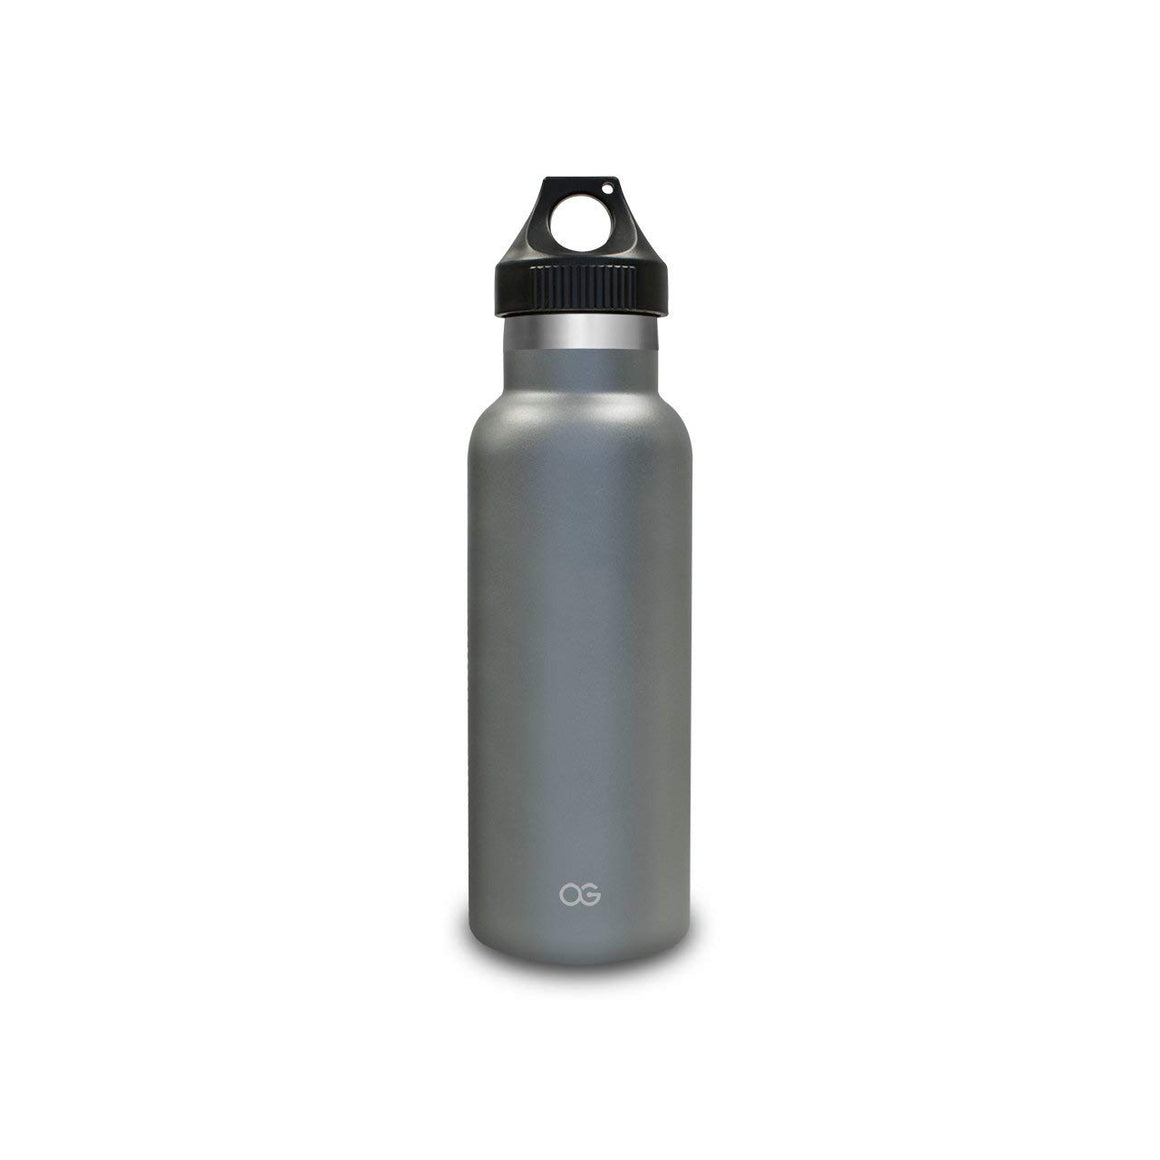 Omnigates Aluminum Vacuum Sealed Water Bottle